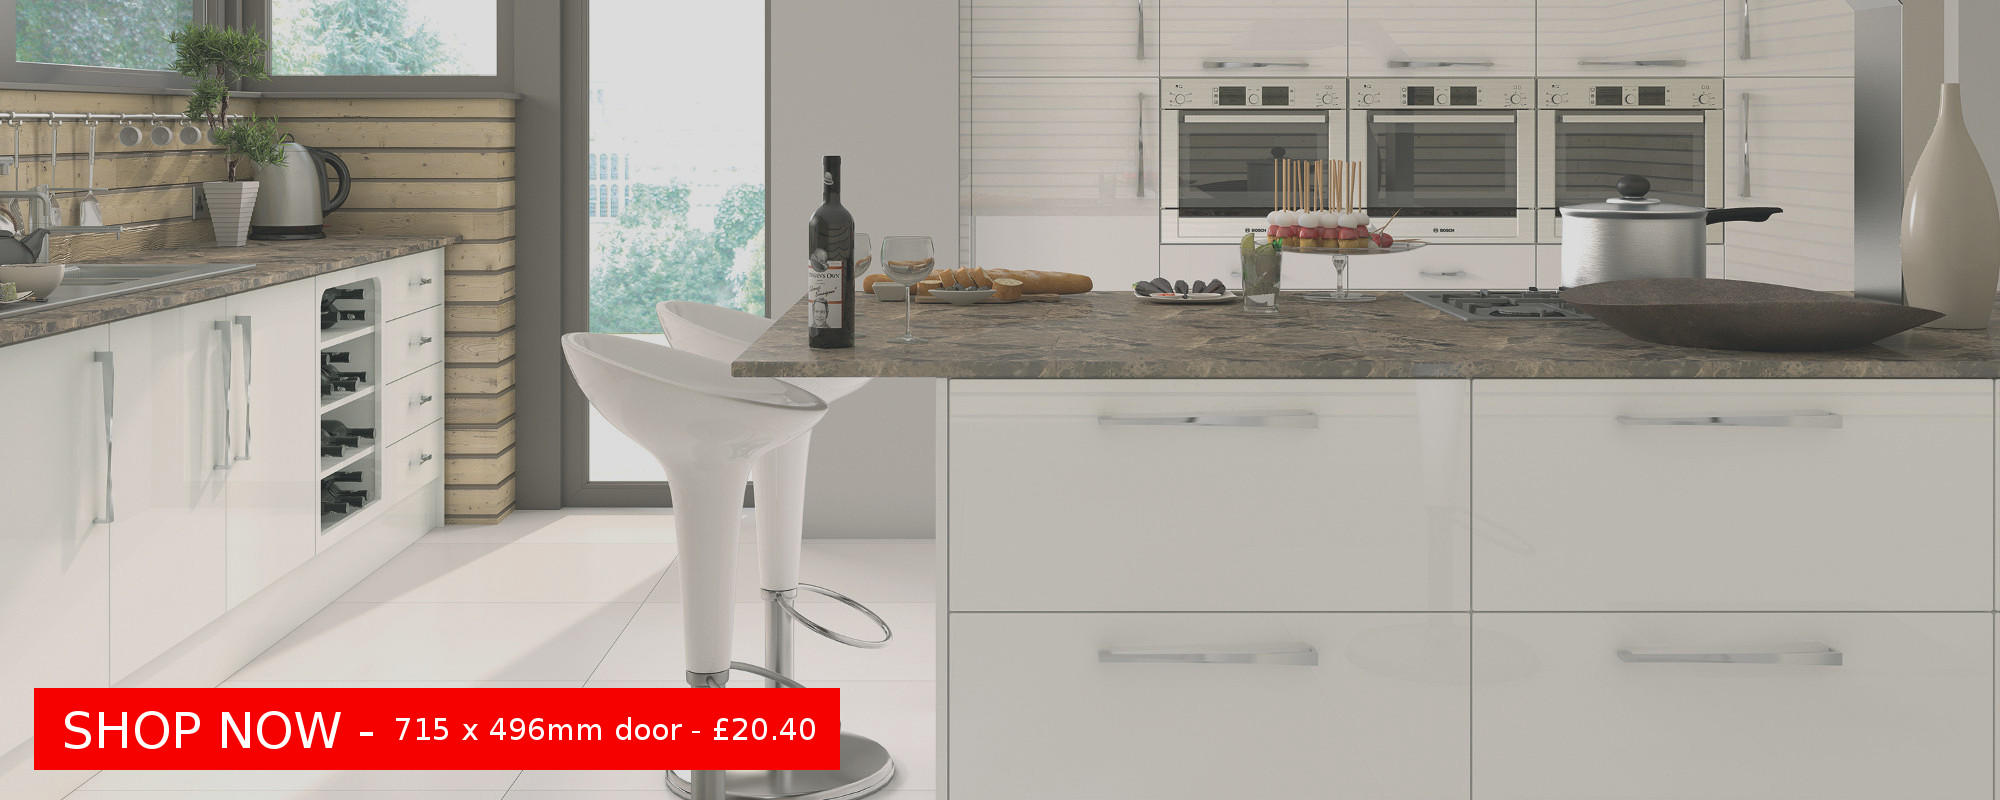 Firbeck Gloss White Slab Door - delivered within 5 days